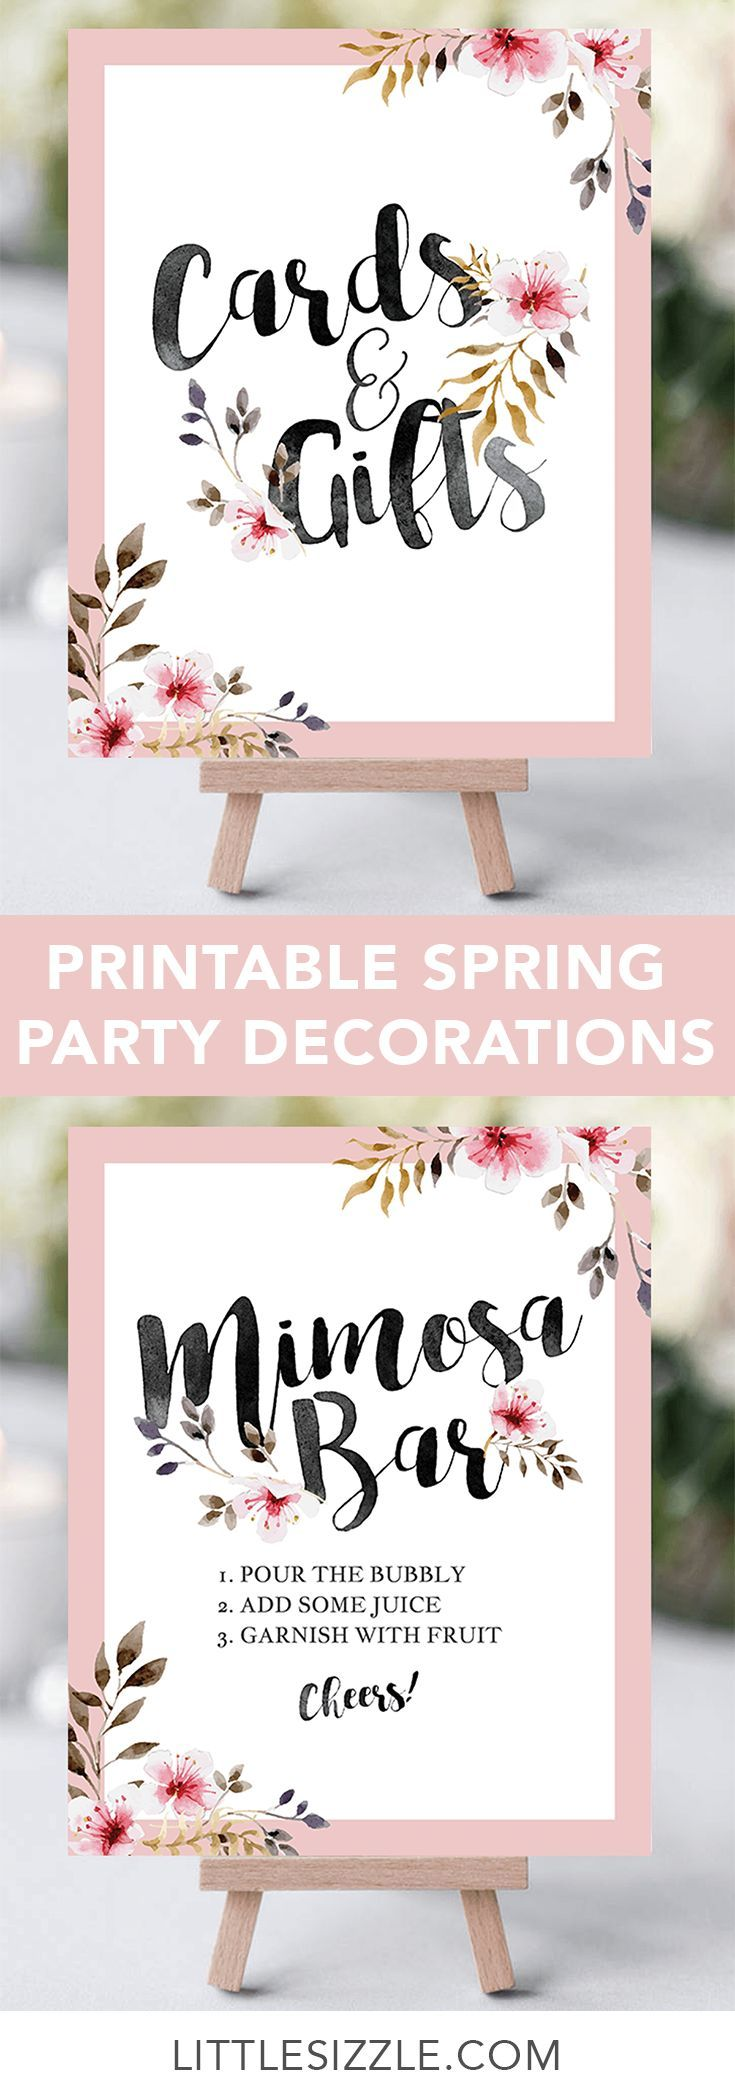 Spring party decorations by LittleSizzle. Printable DIY party table decor for any outdoor or garden themed party! Are you hosting a floral party? Print your own table signs and WOW your guests with these gorgeous blush pink floral table decorations with black calligraphy wordings. These DIY garden signs are perfect for a girl baby shower or a spring bridal shower. #DIY #printable #decorations #tablesigns #babyshowerideas #bridalshowerideas